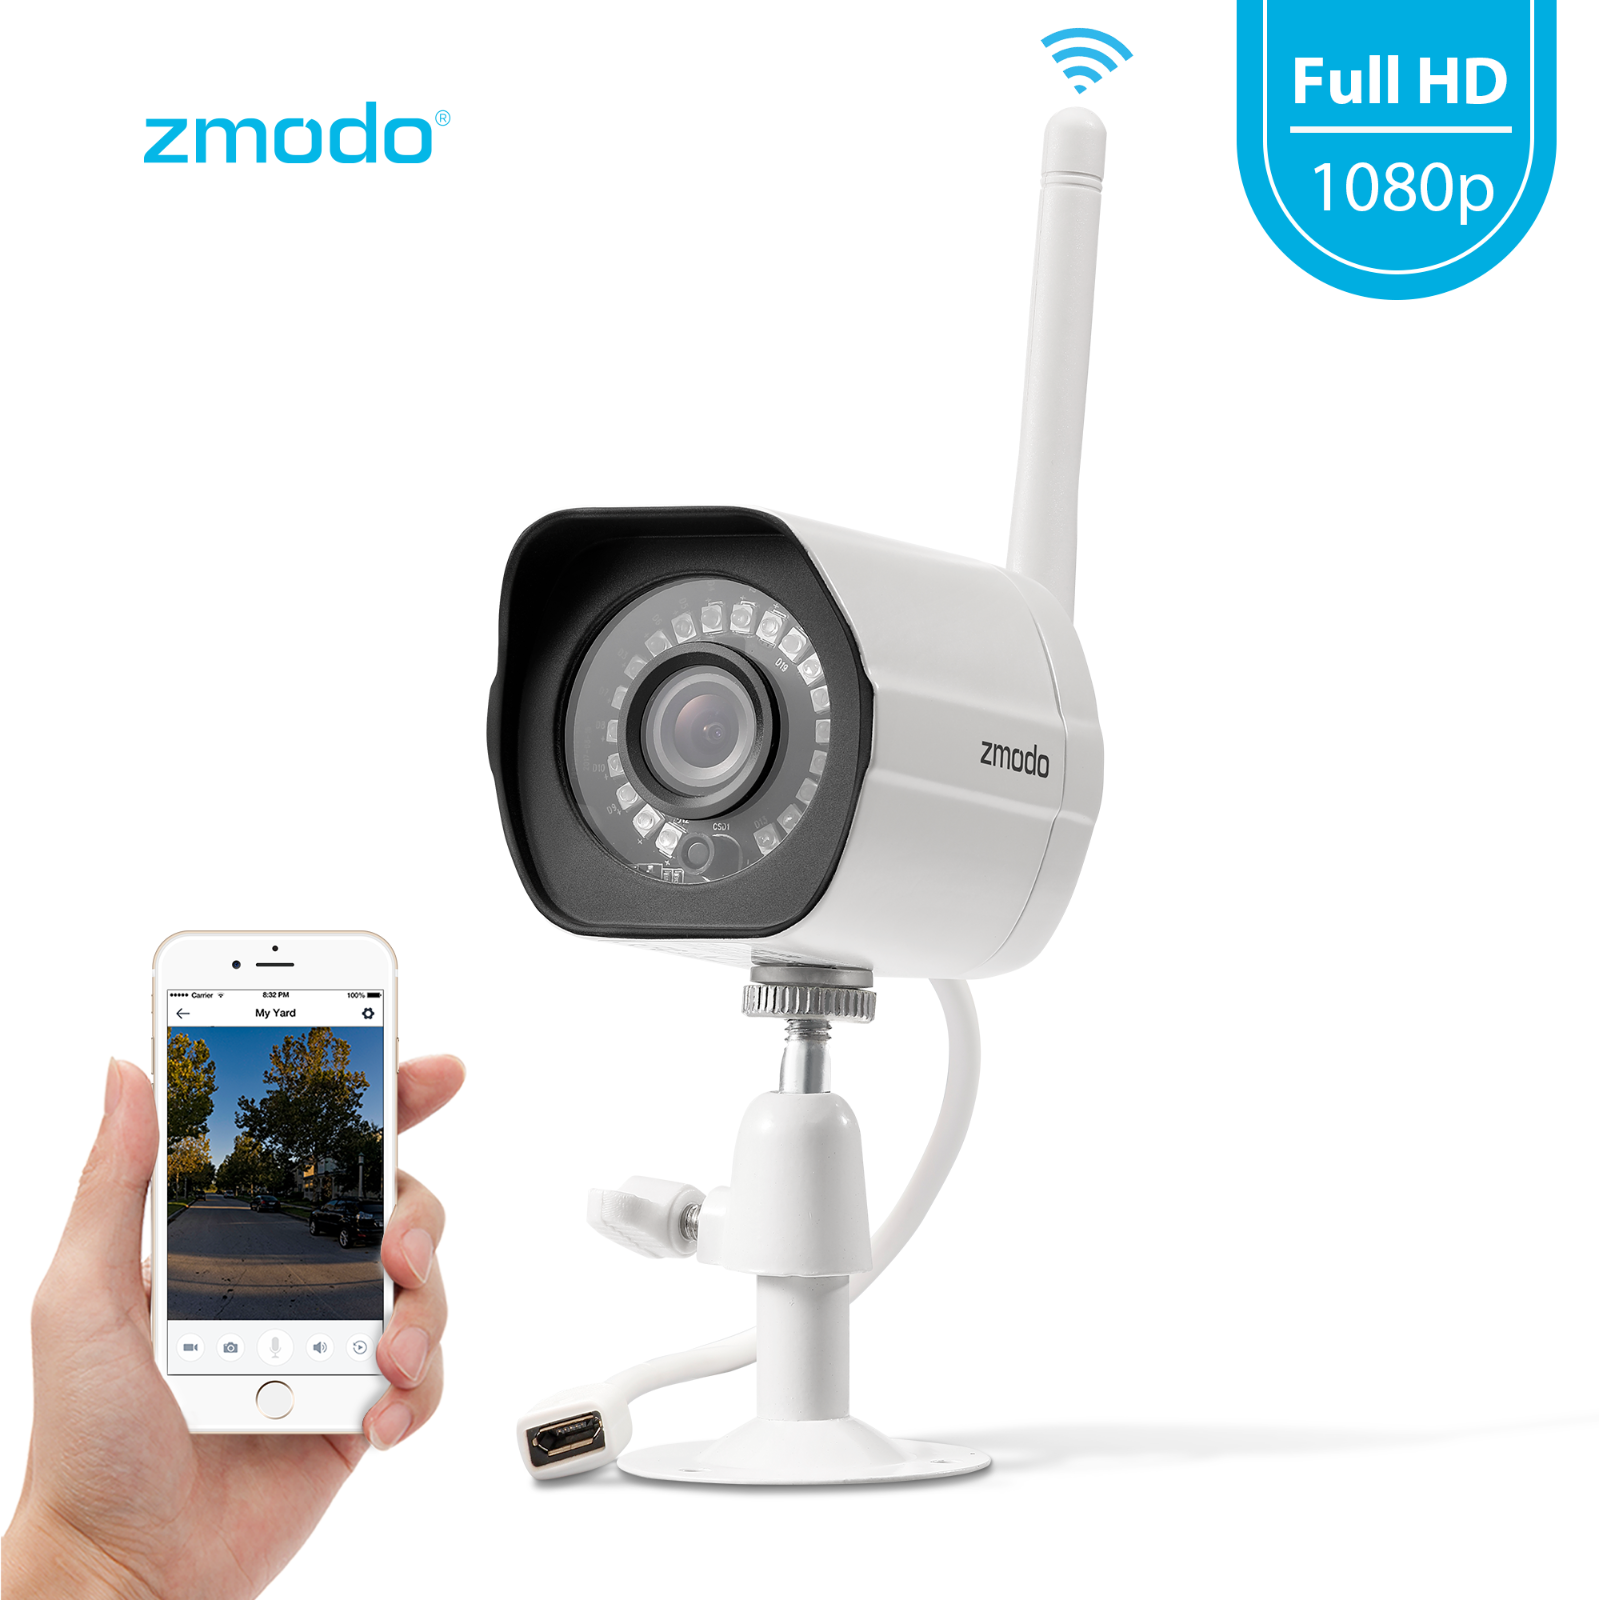 Zmodo 1080p Wireless Outdoor Home Security Camera,Night Vision Remote Monitoring